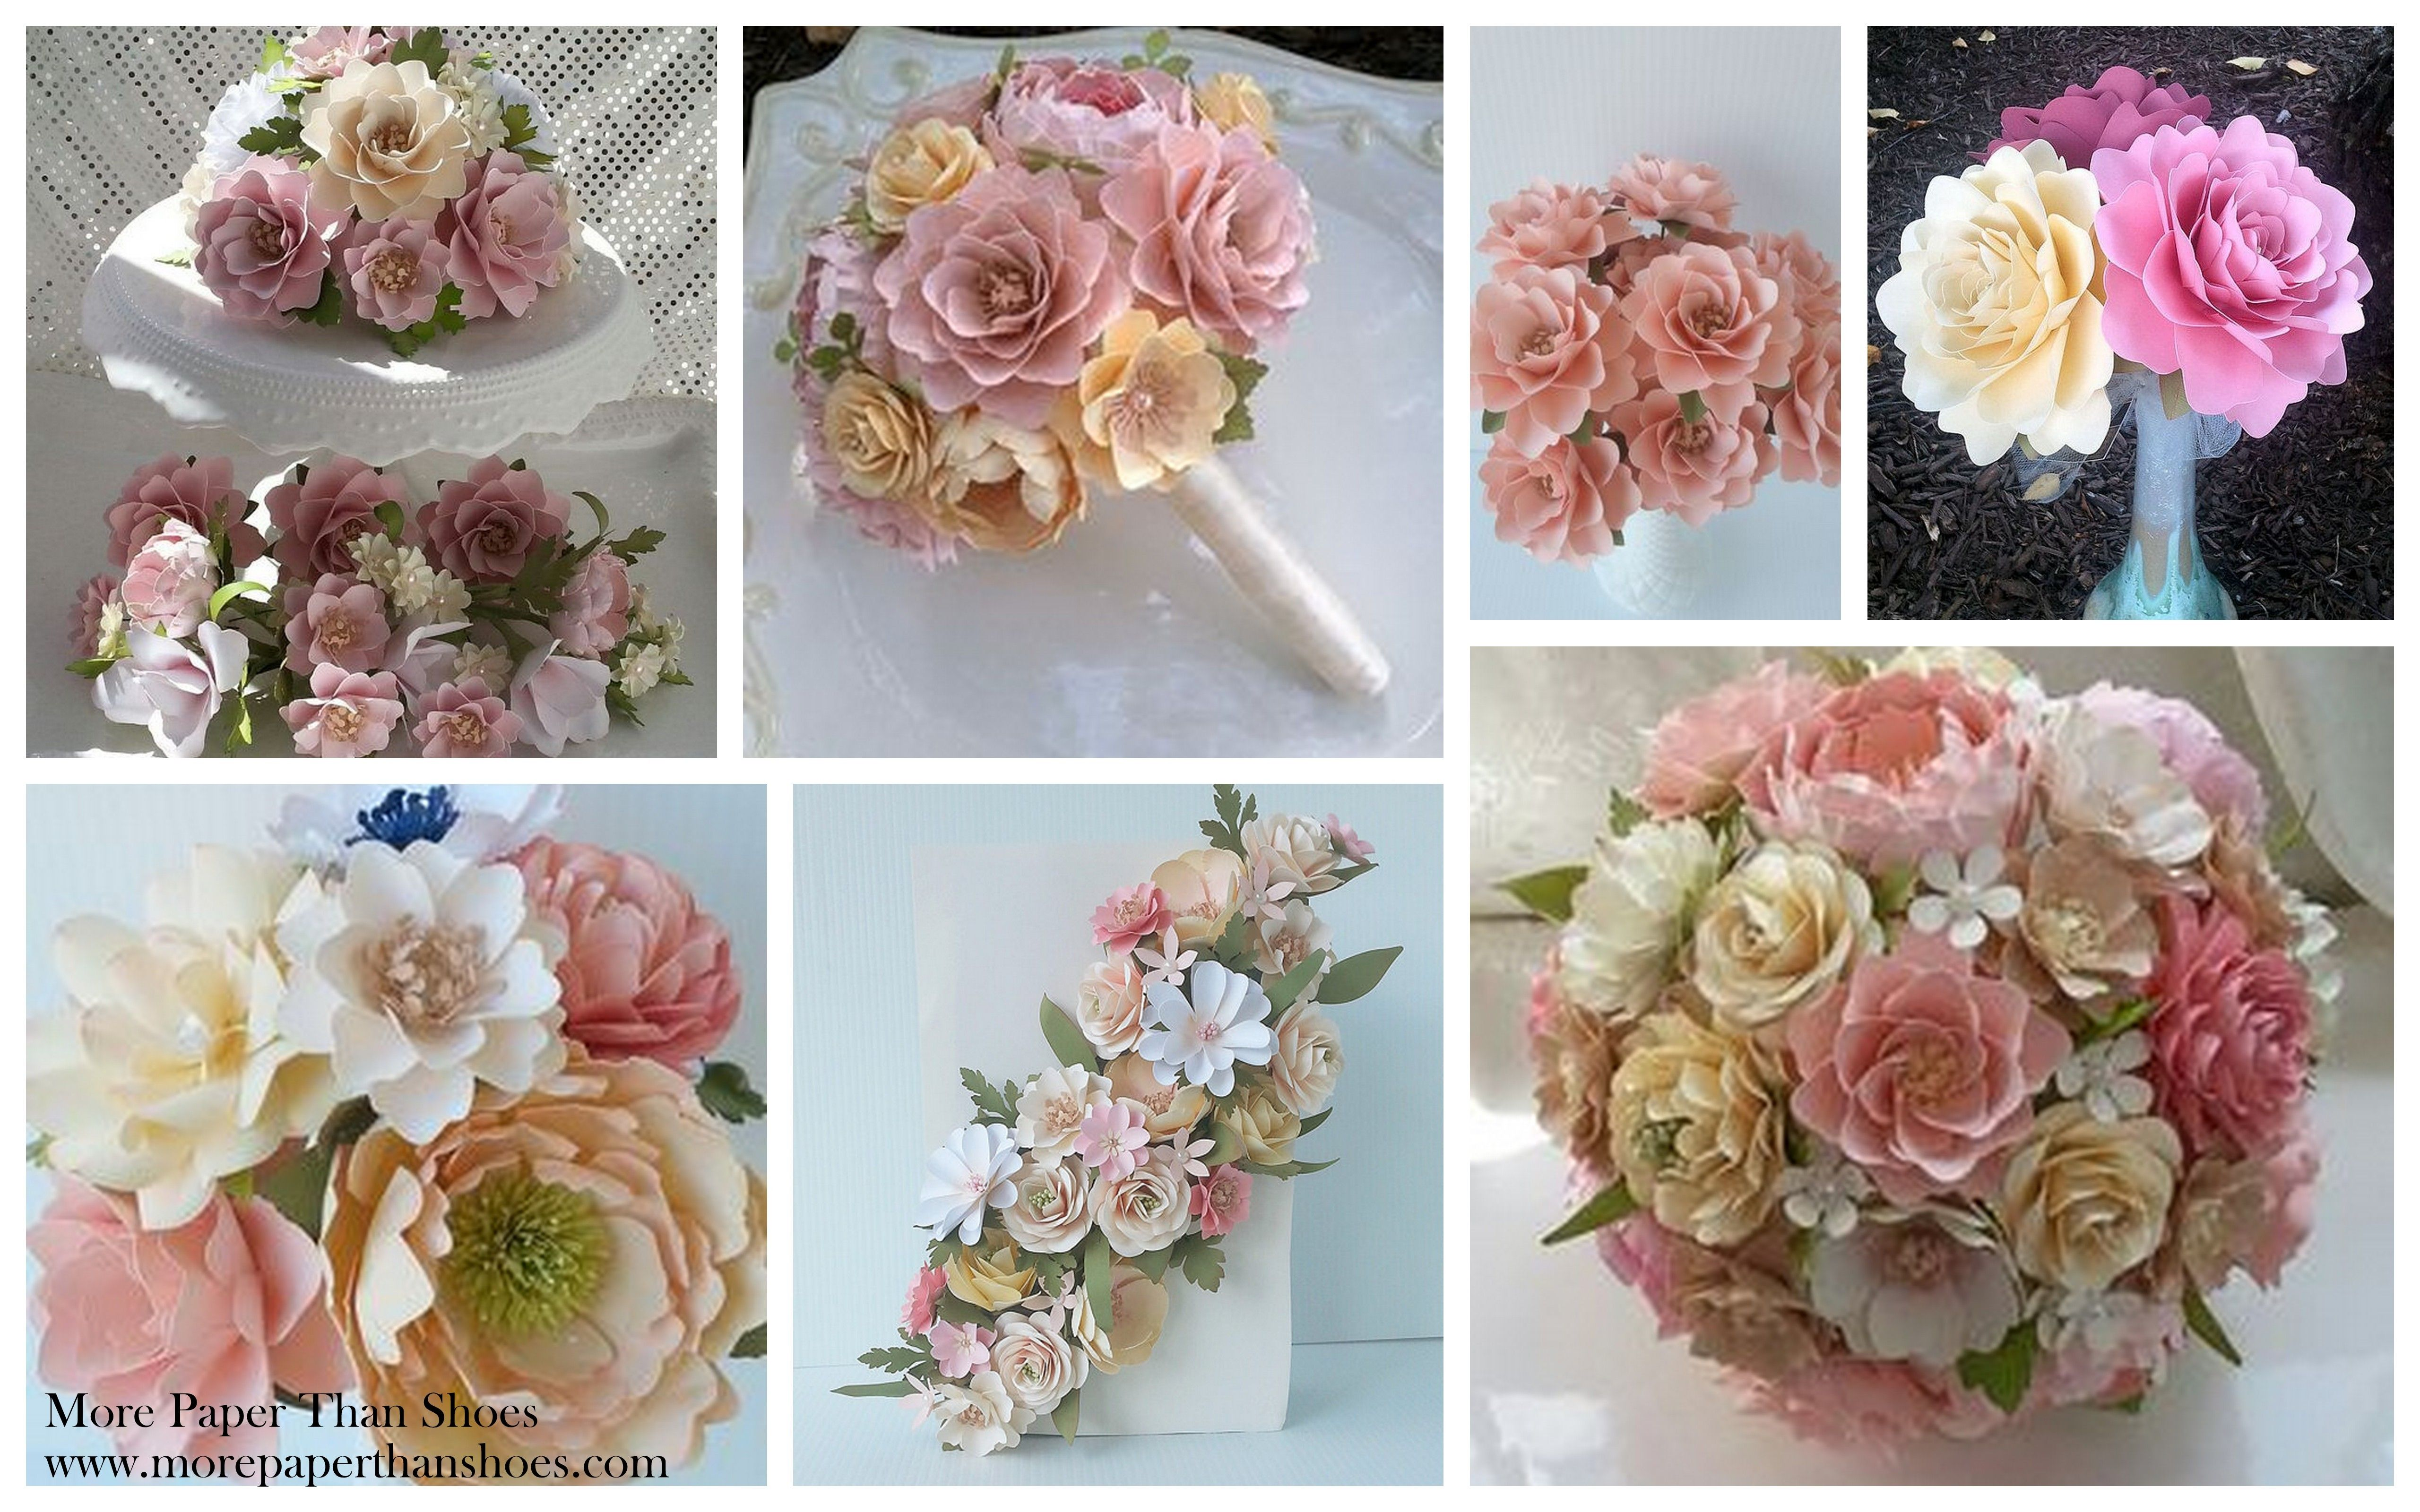 Shabby chic wedding flowers pink and ivory paper flowers shabby chic wedding flowers pink and ivory paper flowers wedding day bridal izmirmasajfo